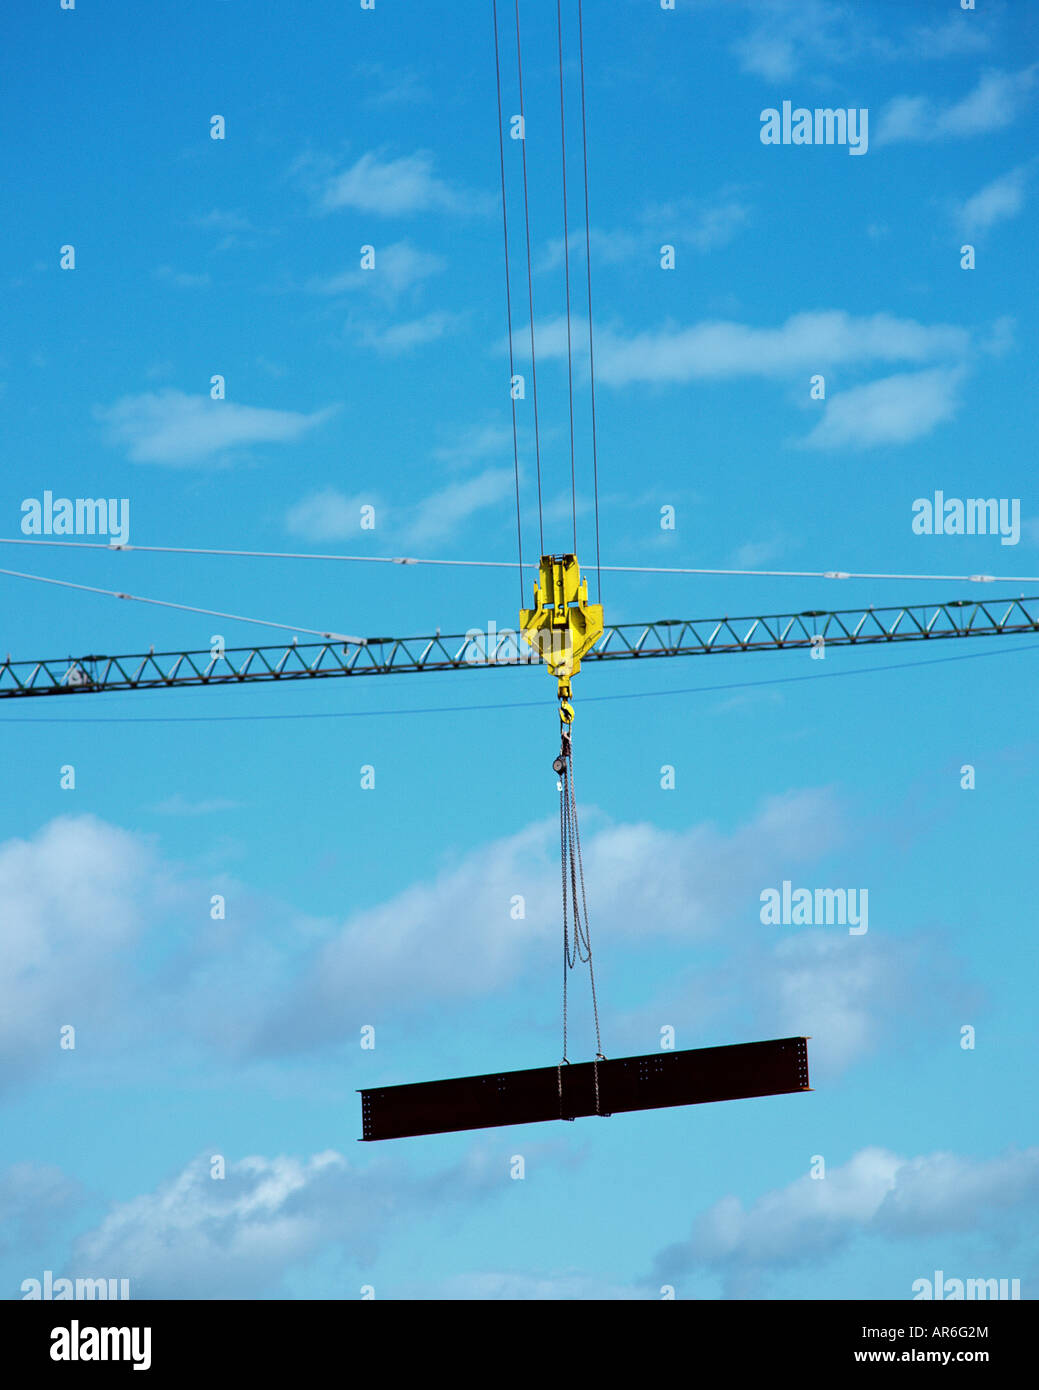 Industrial crane holding a girder Stock Photo